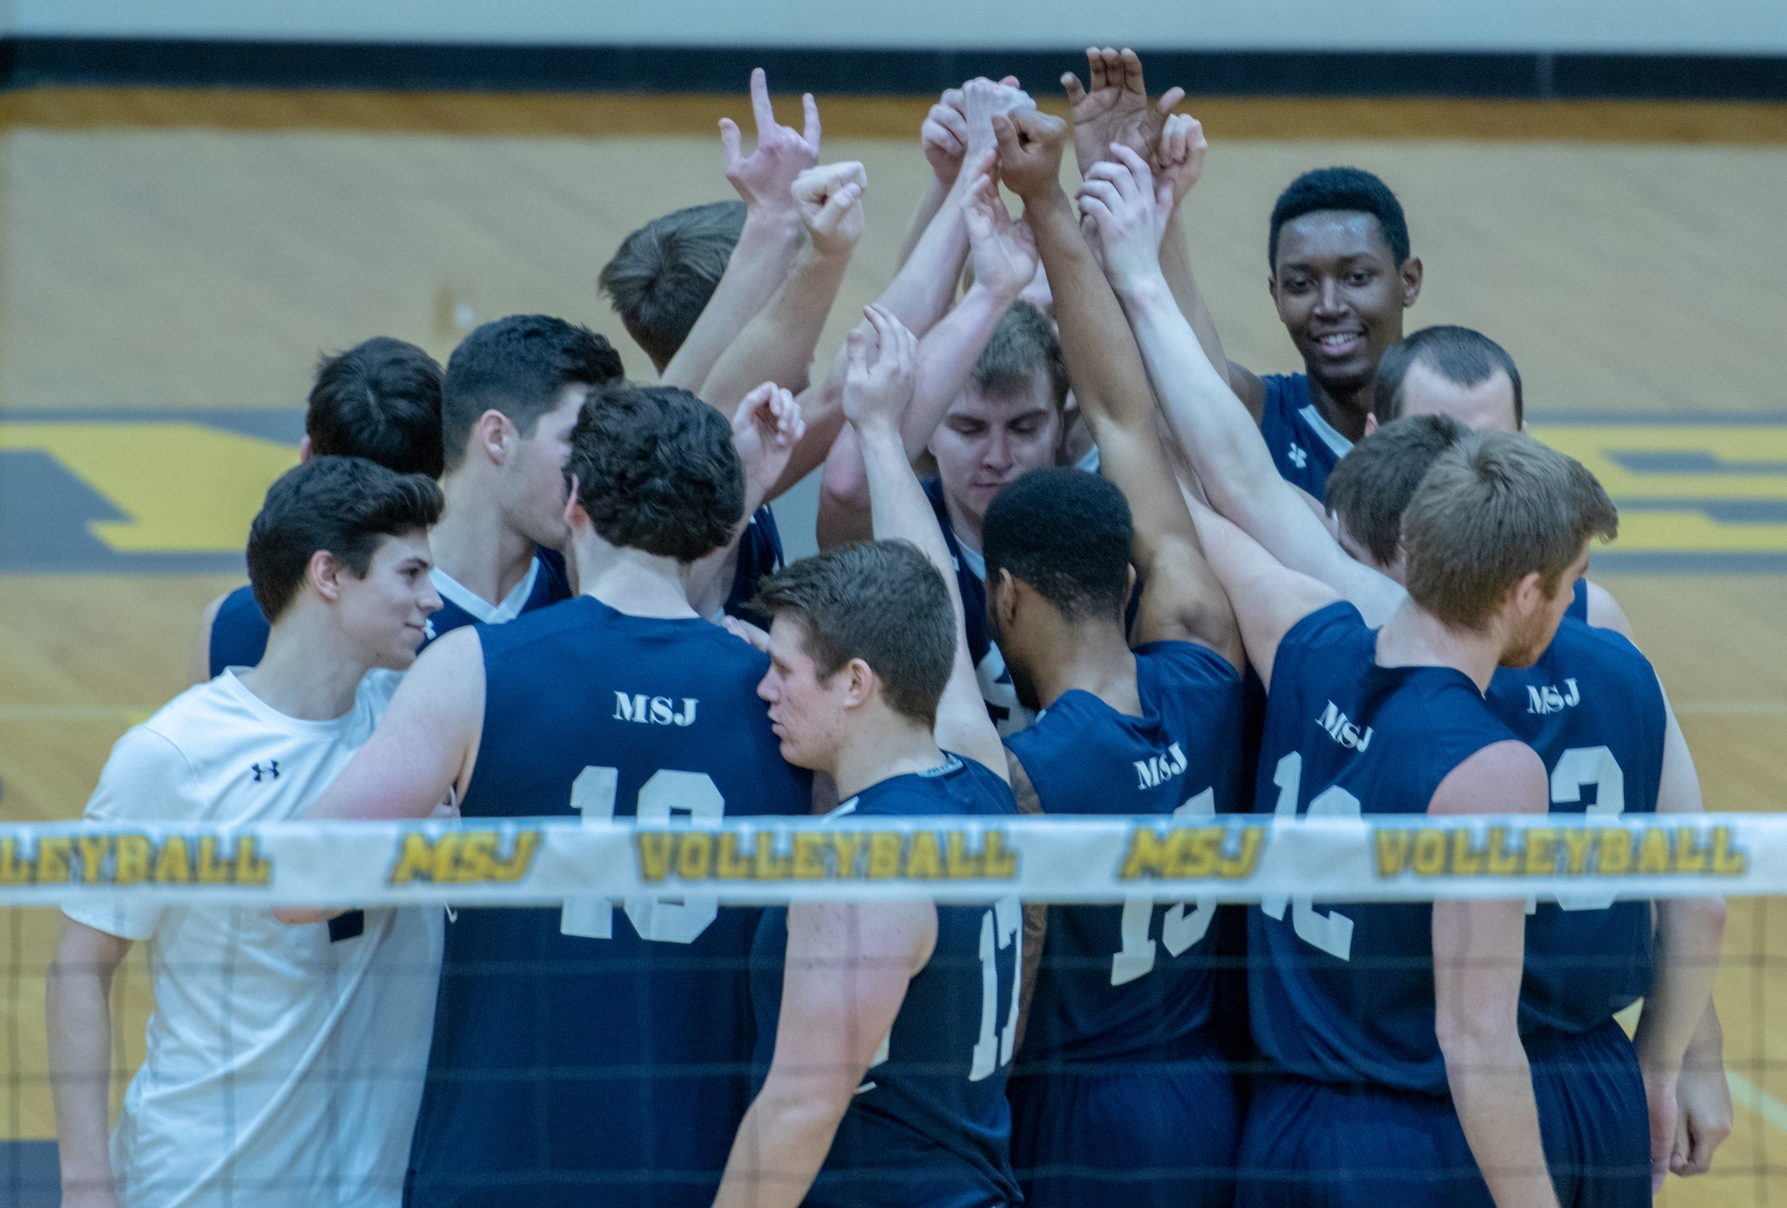 Lions drop Thomas More in straight sets